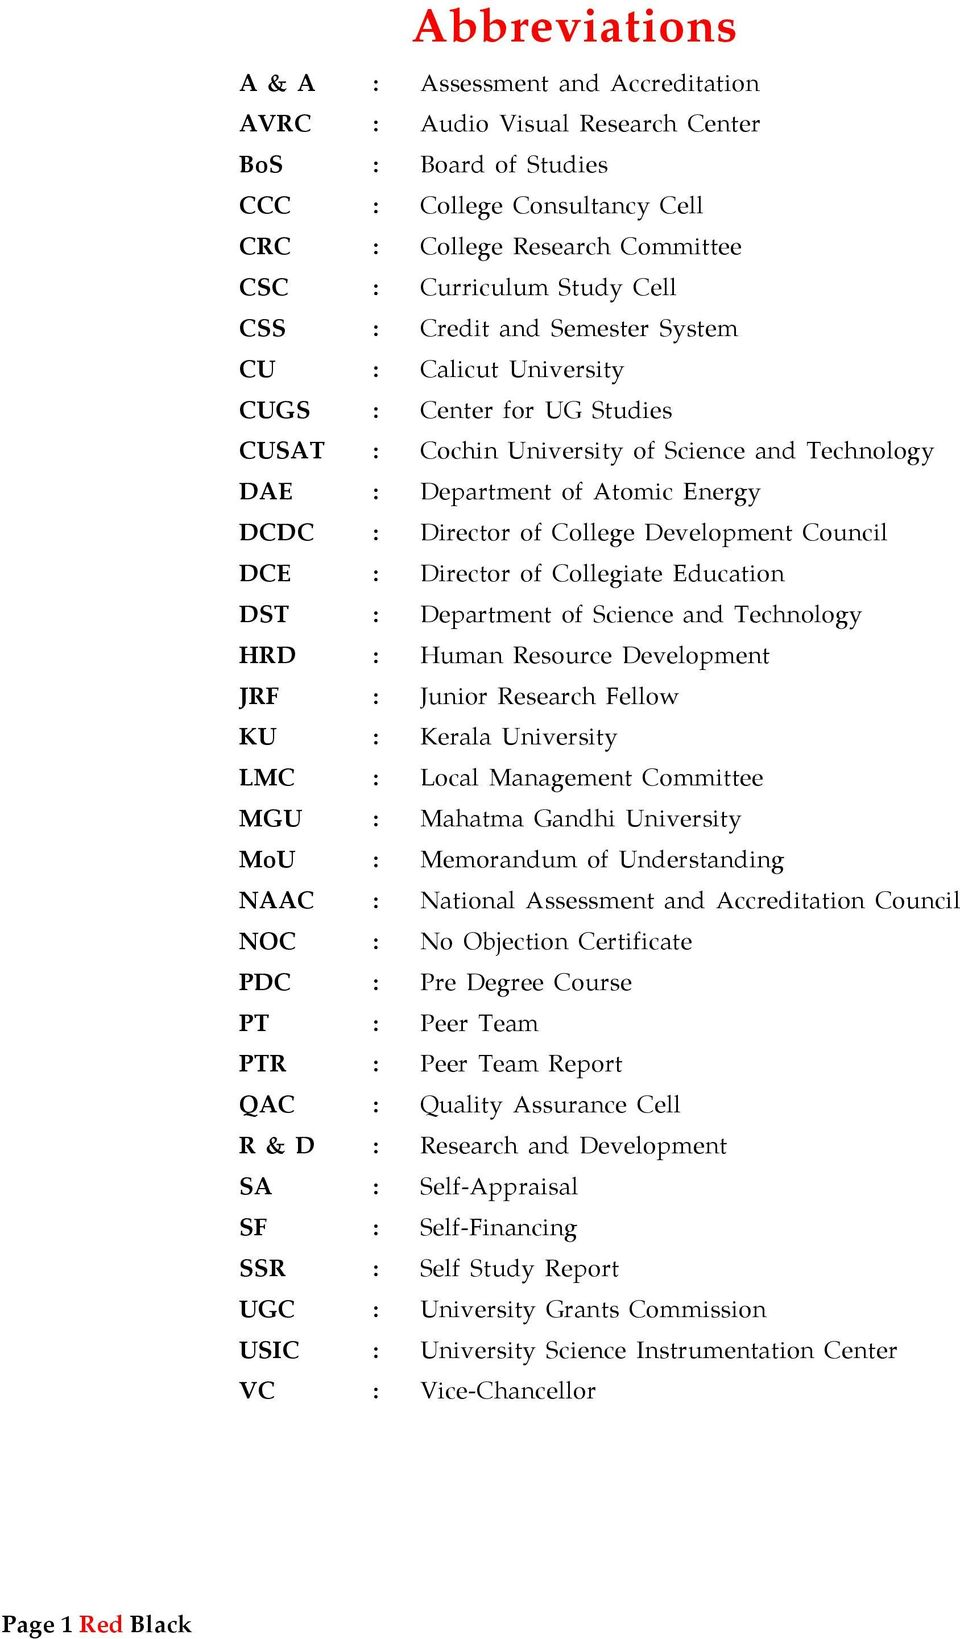 College Development Council DCE : Director of Collegiate Education DST : Department of Science and Technology HRD : Human Resource Development JRF : Junior Research Fellow KU : Kerala University LMC